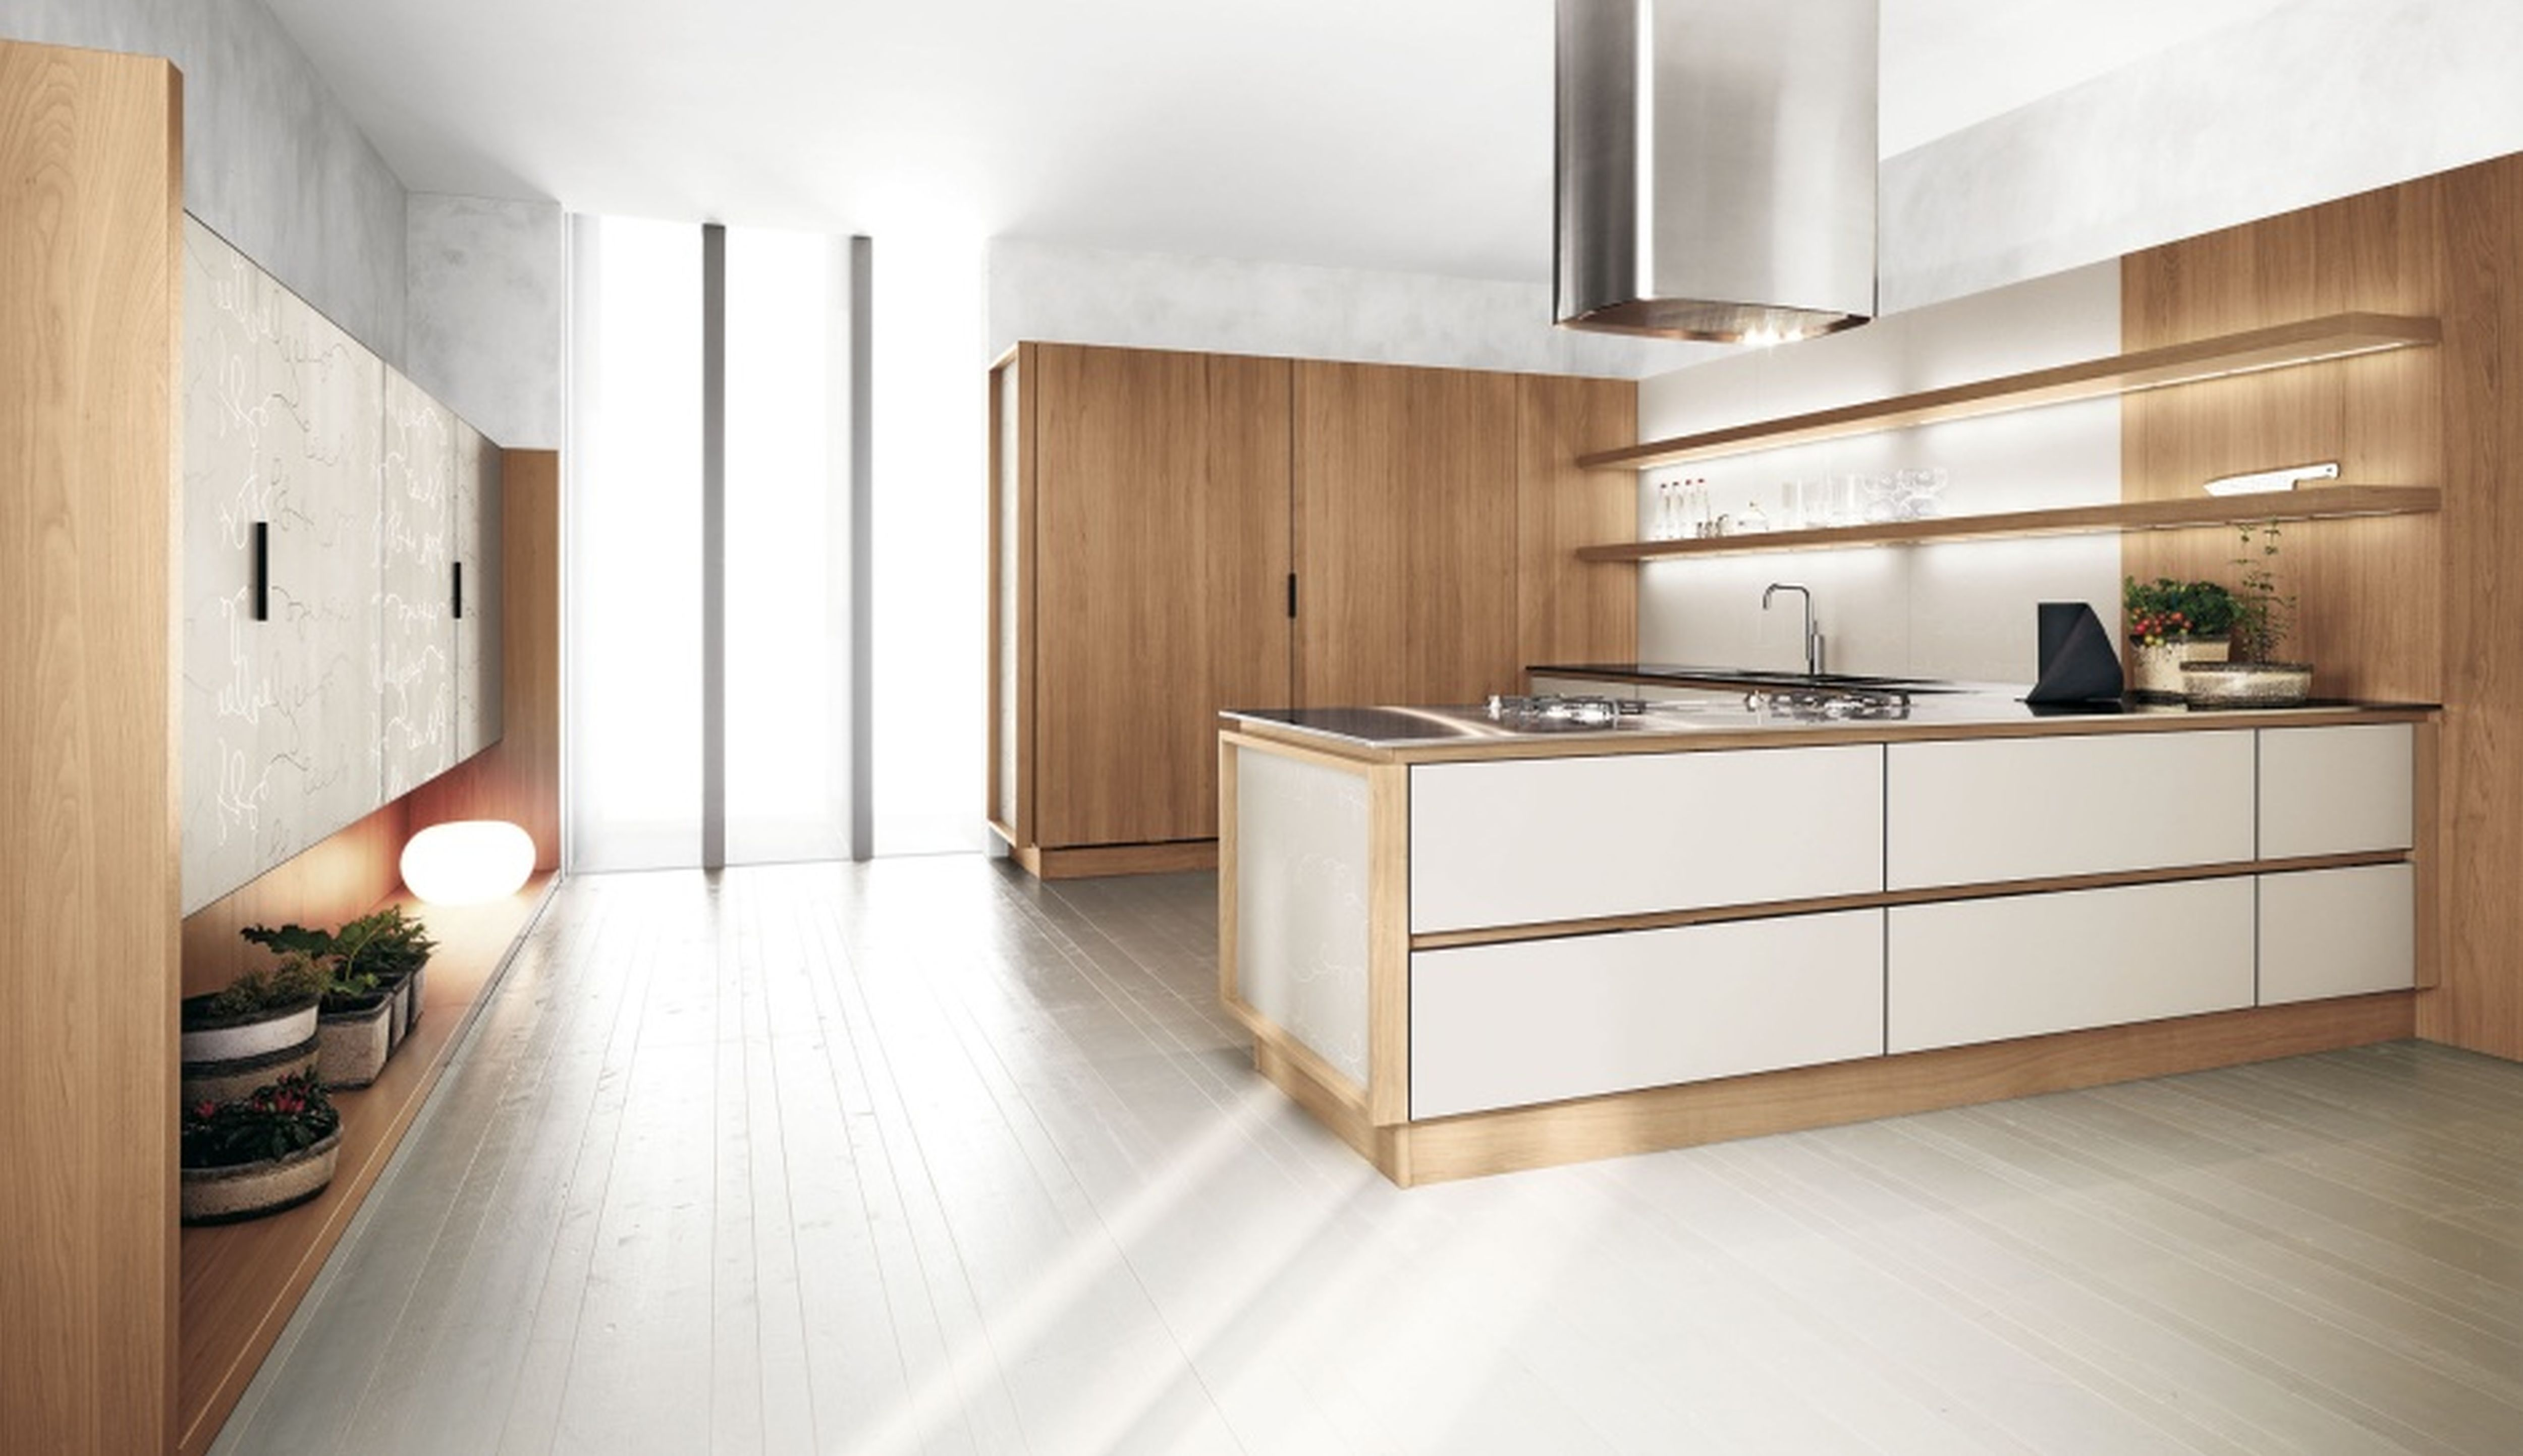 Fabulous White And Walnut Two Tone Kitchen Cabinets Design Inspirations Equipped Appeali White Modern Kitchen Modern Kitchen Design Scandinavian Kitchen Design